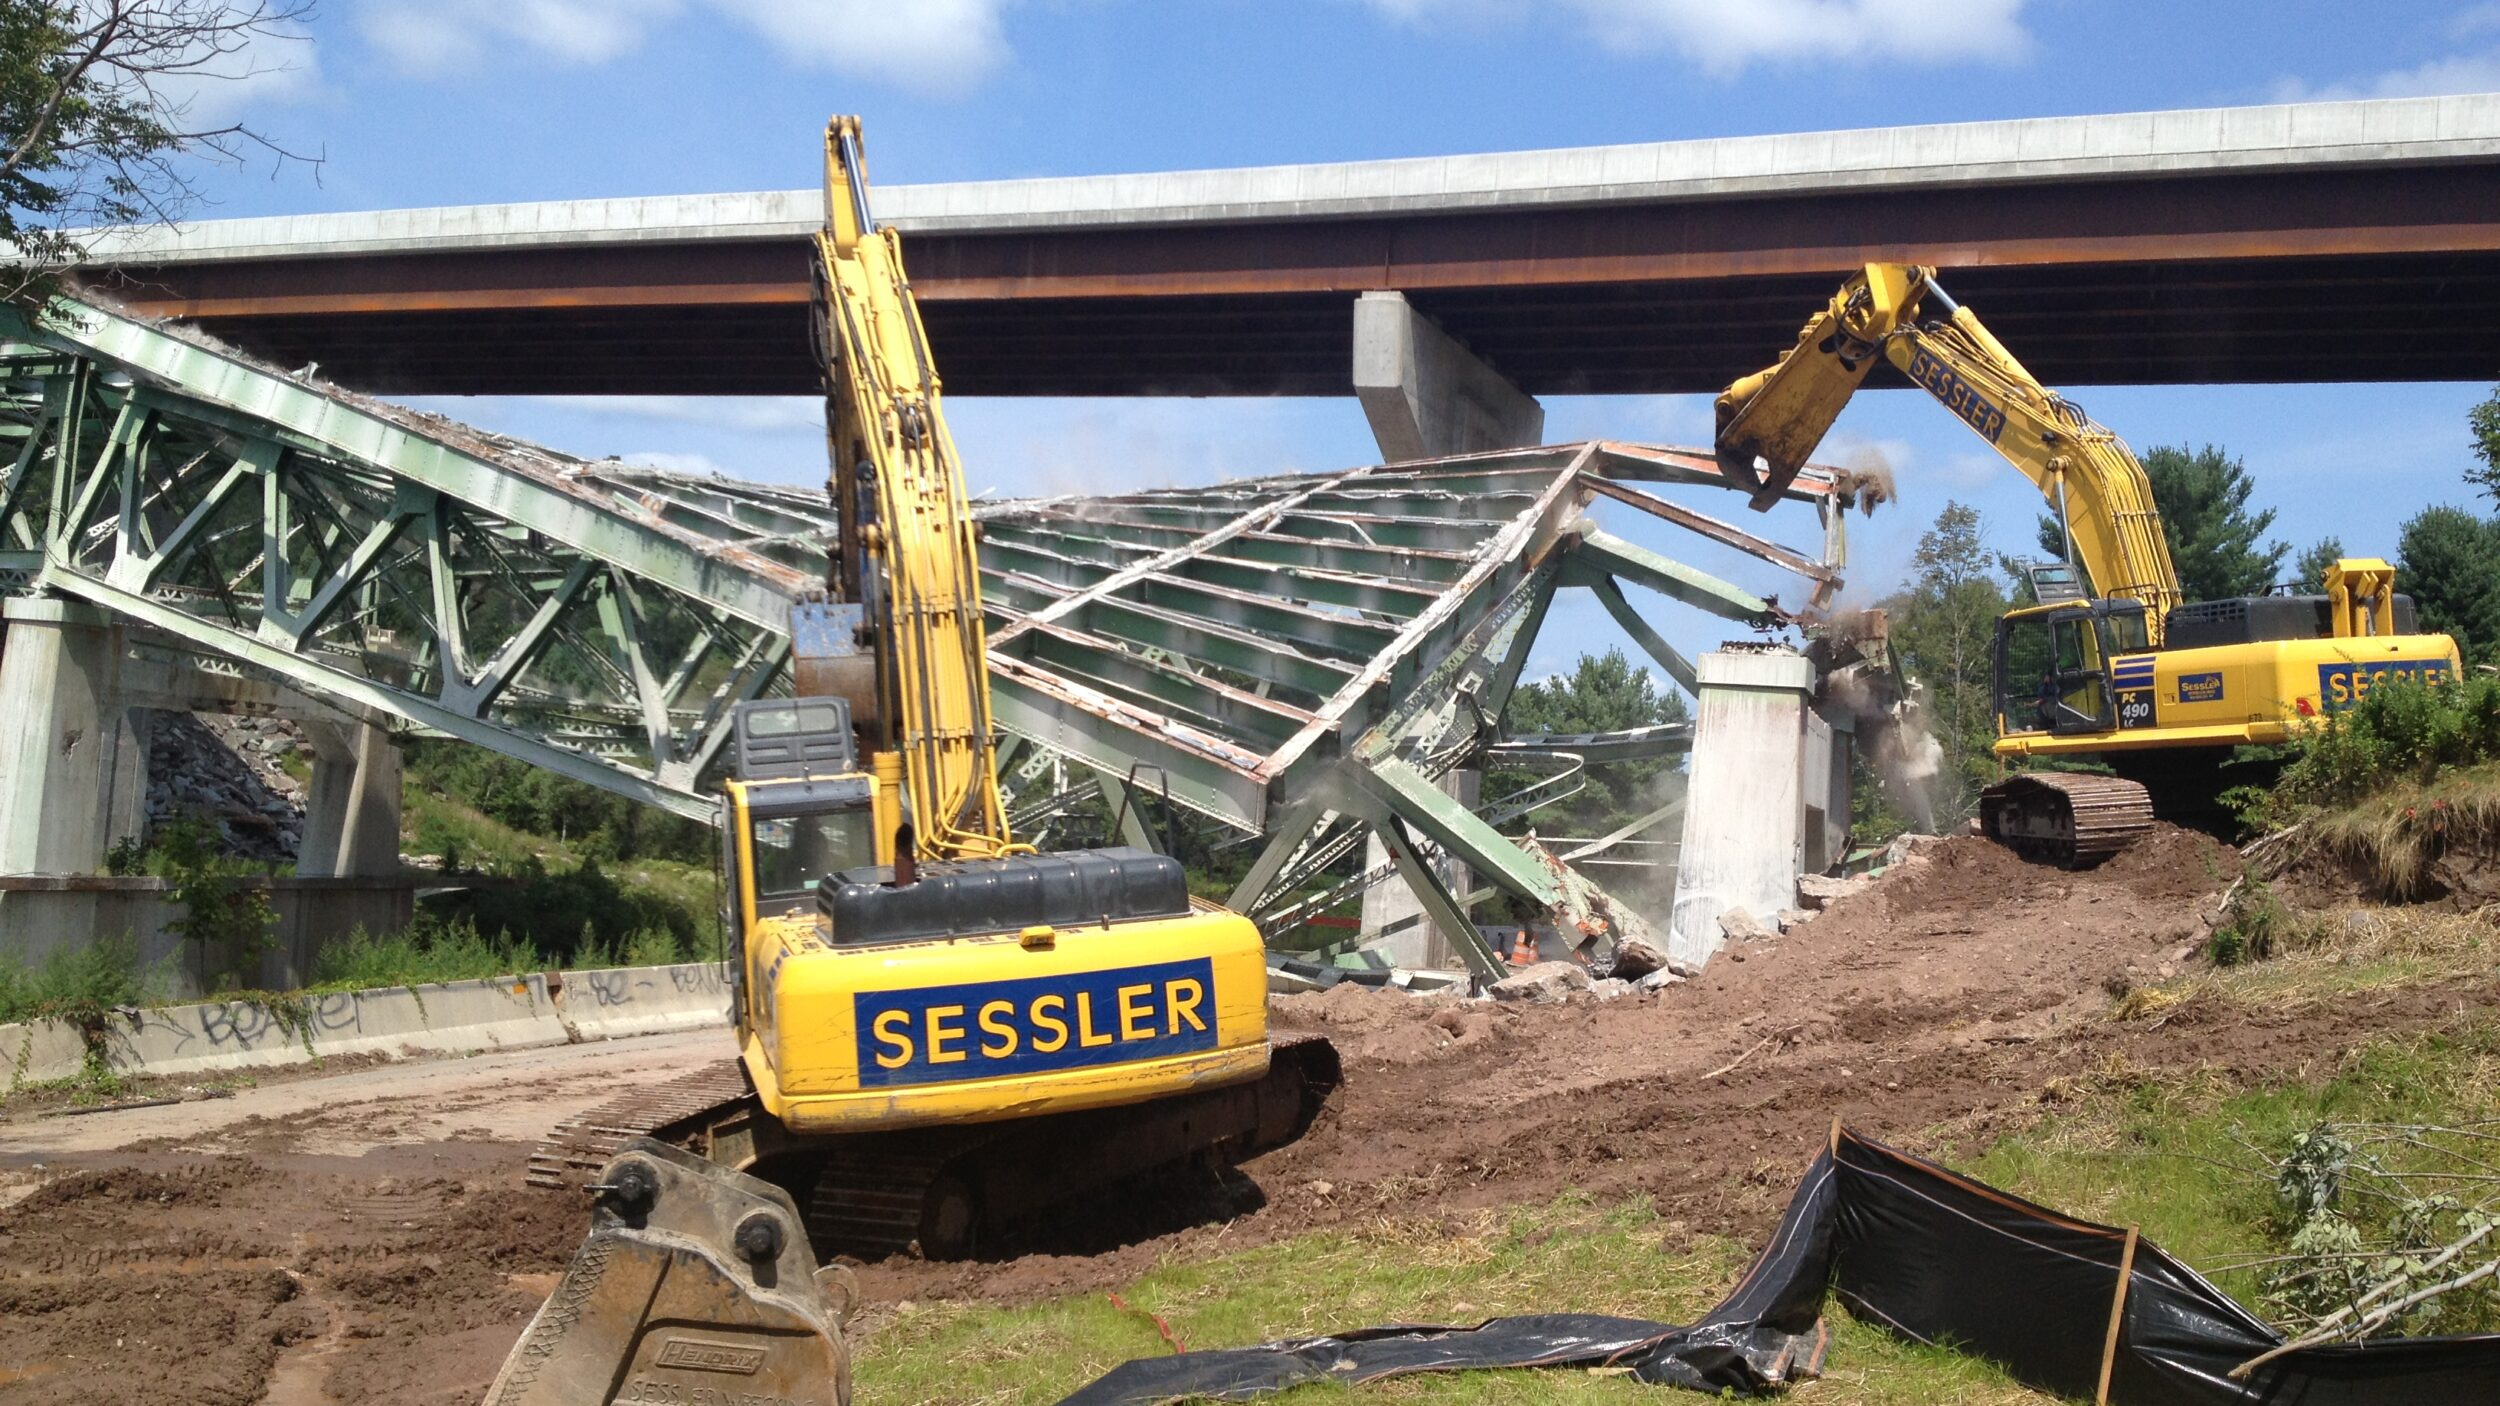 Sessler Wrecking Bridge Demolision